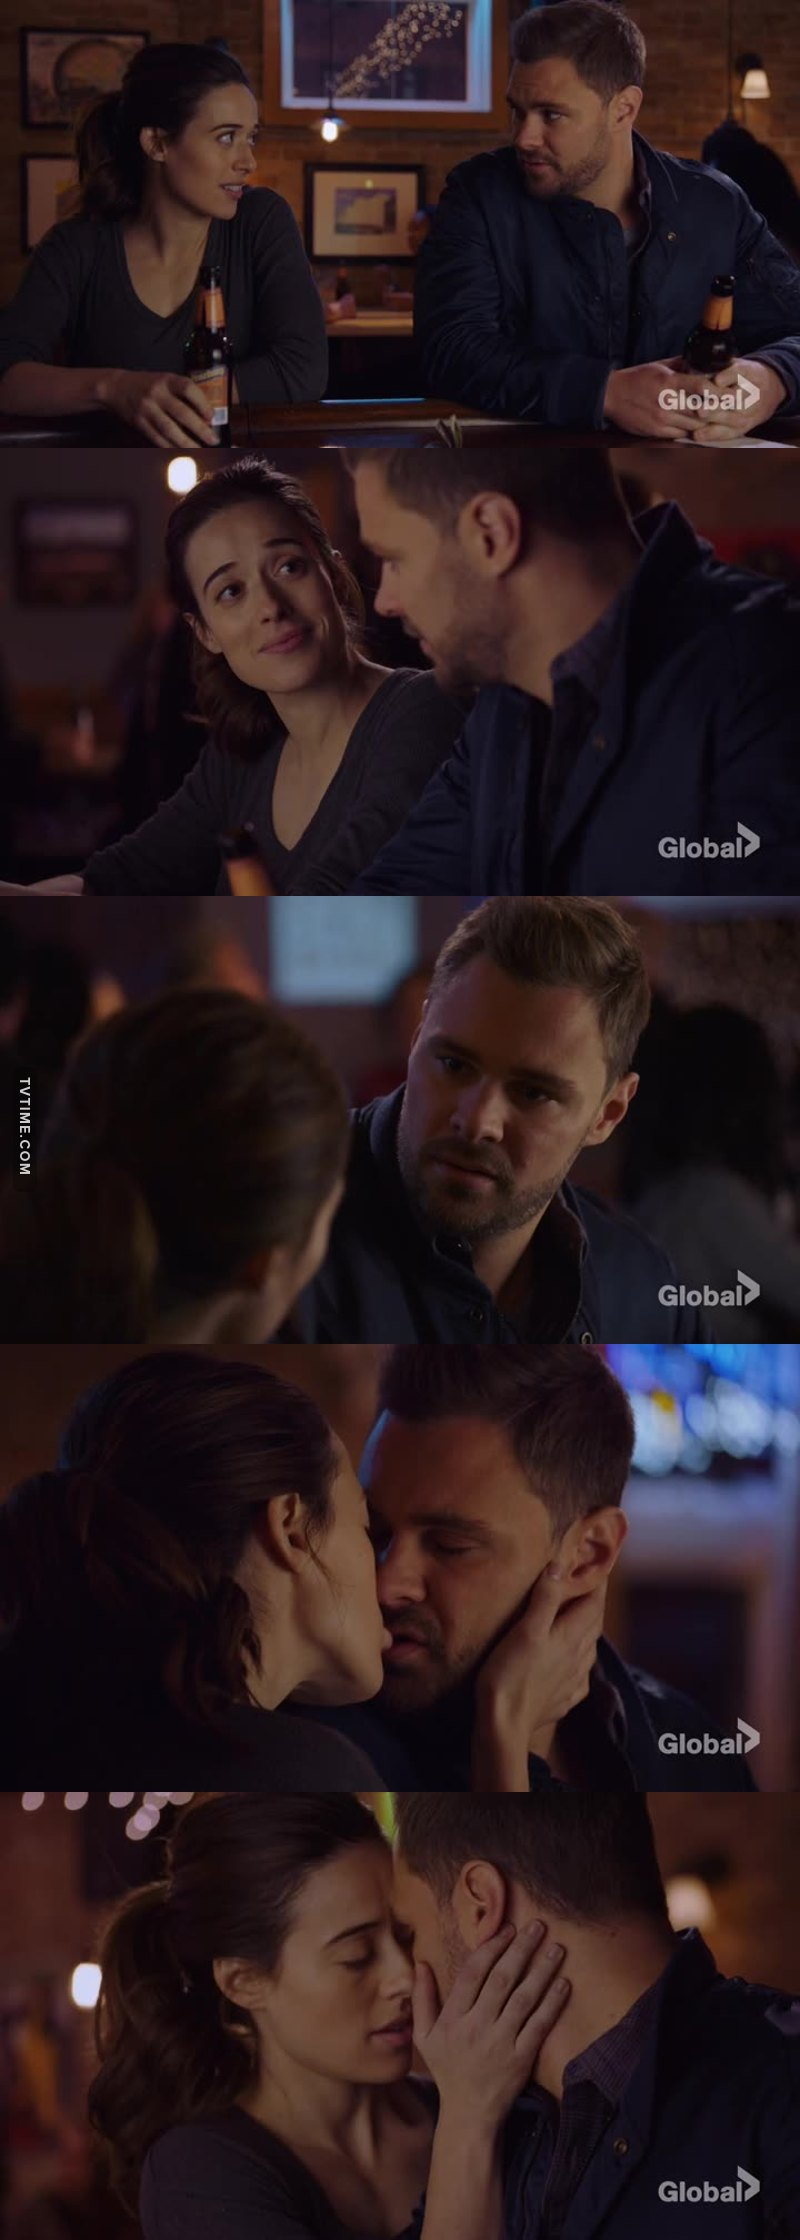 BURZEK!!!!! I've missed them so much! Hopefully this is the start of something stronger and beautiful!